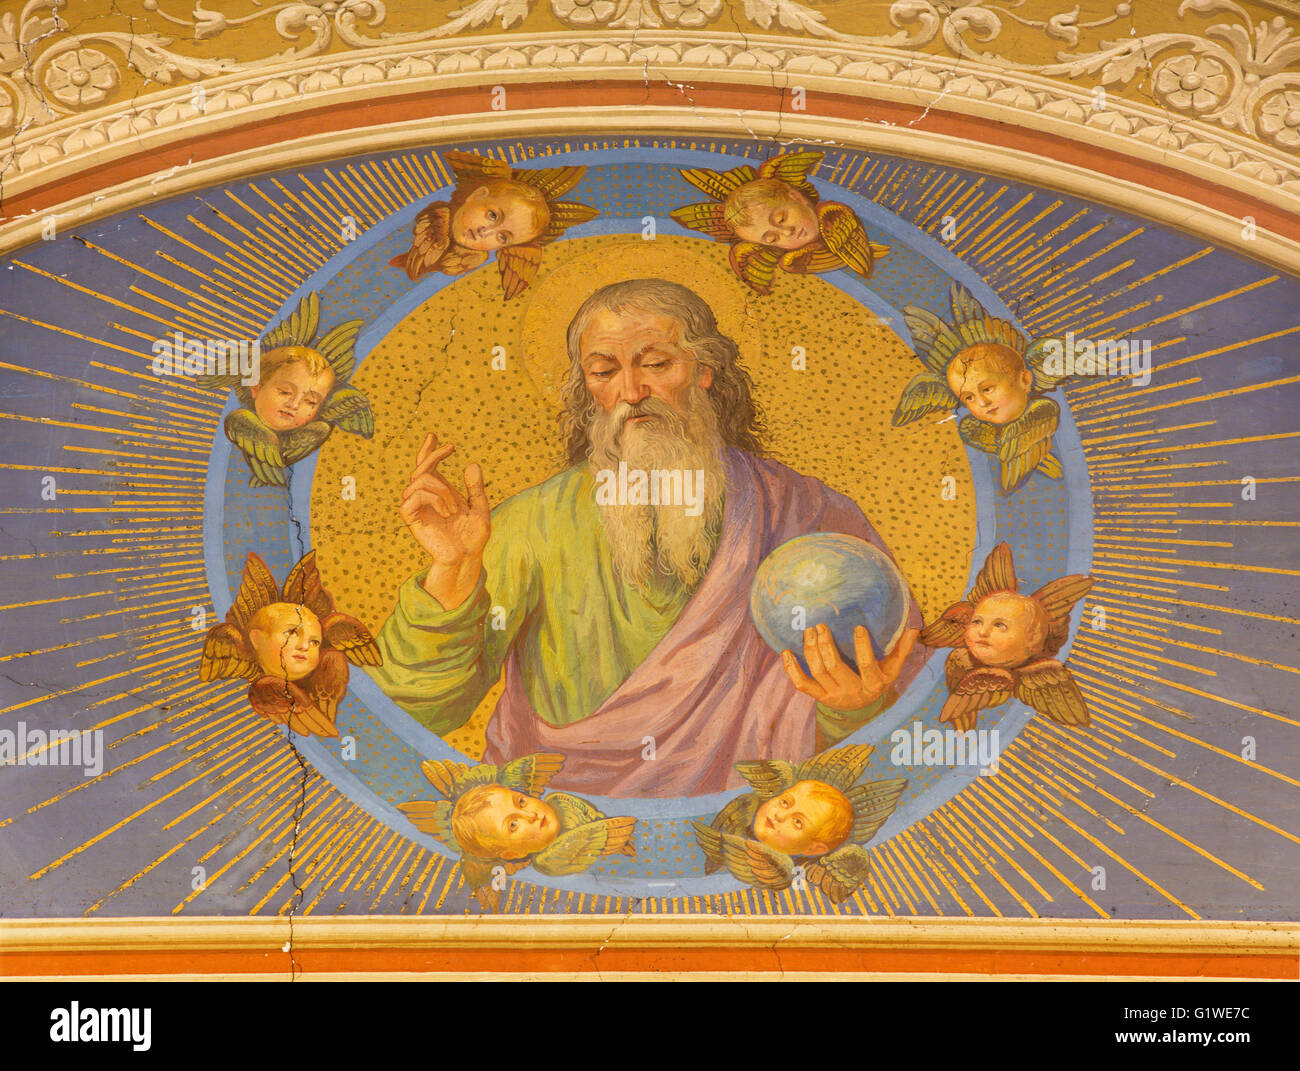 ROME, ITALY - MARCH 12, 2016: The fresco God the Creator by unknown artist from end of 19. cent. - Stock Image